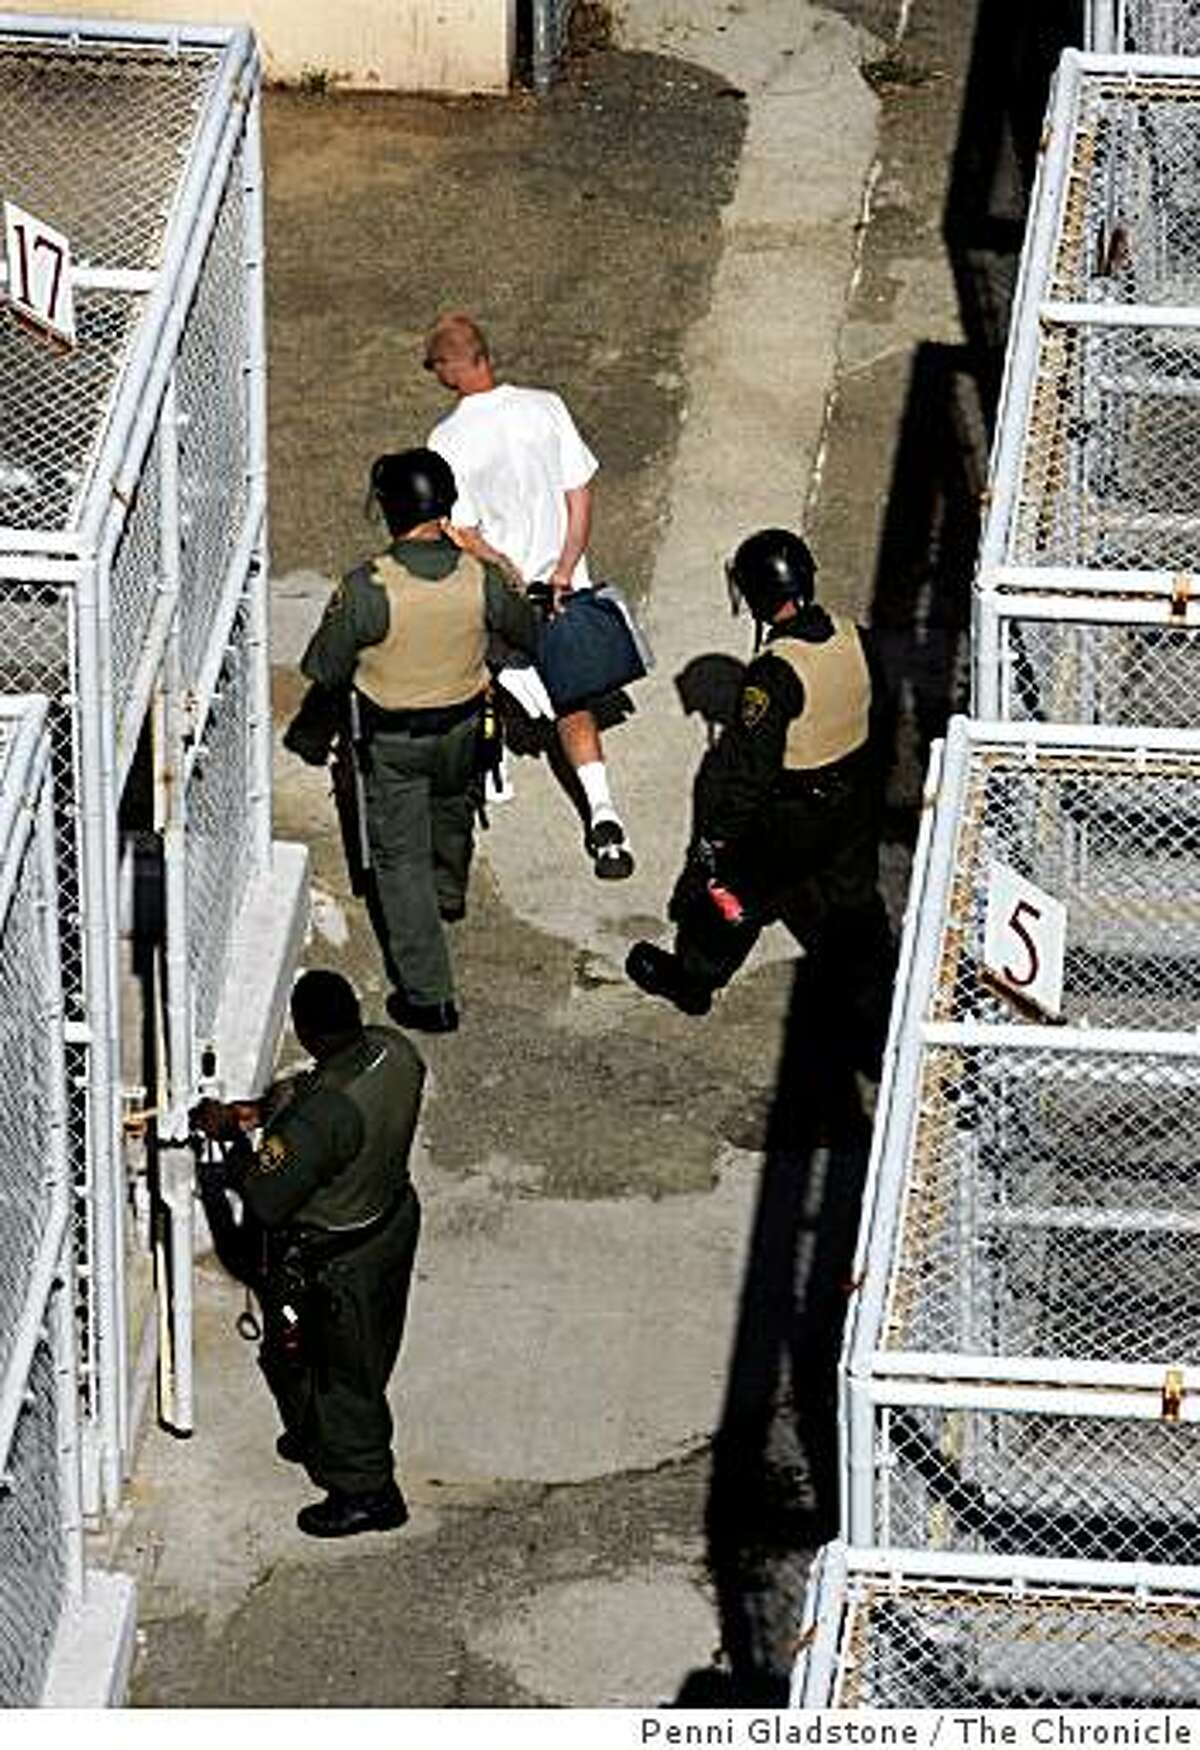 A prisoner is escorted from the death row exercise area at San Quentin prison in San Quentin, Calif. Photo by Penni Gladstone / The Chronicle